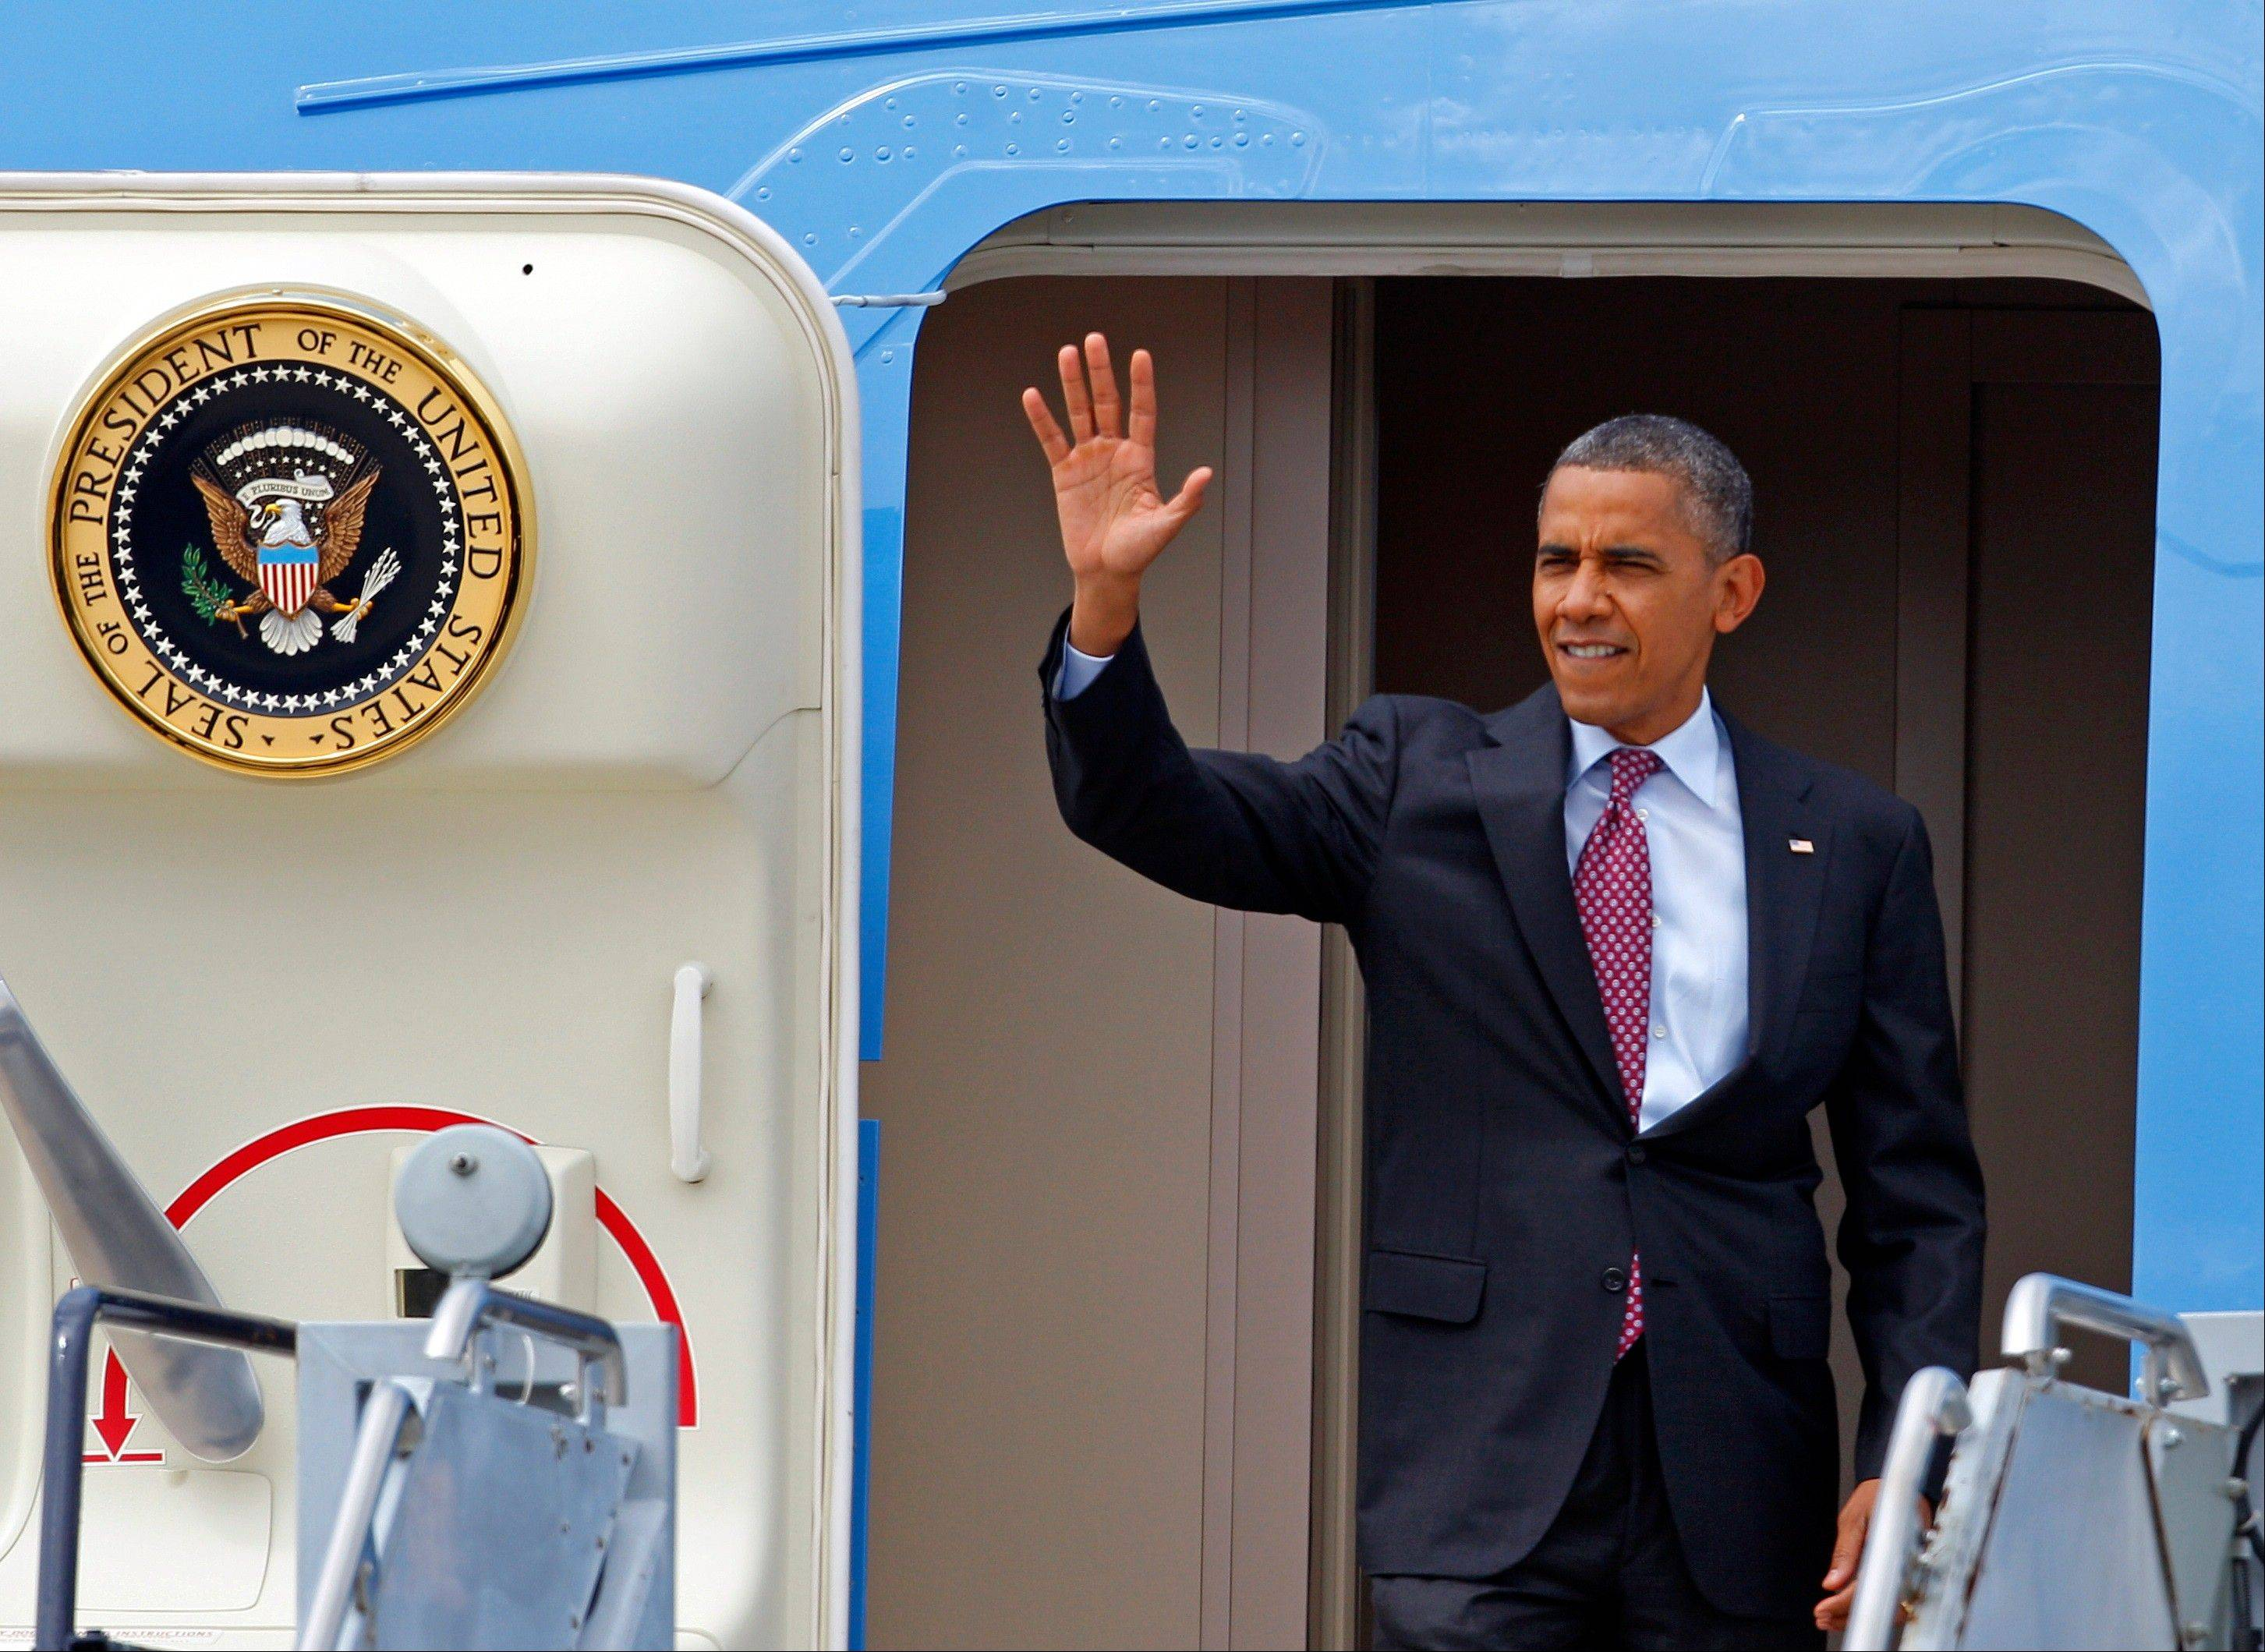 President Barack Obama waves to supporters as he arrives at the Charlotte/Douglas International Airport for the Democratic National Convention in Charlotte, N.C., Wednesday, Sept. 5, 2012.